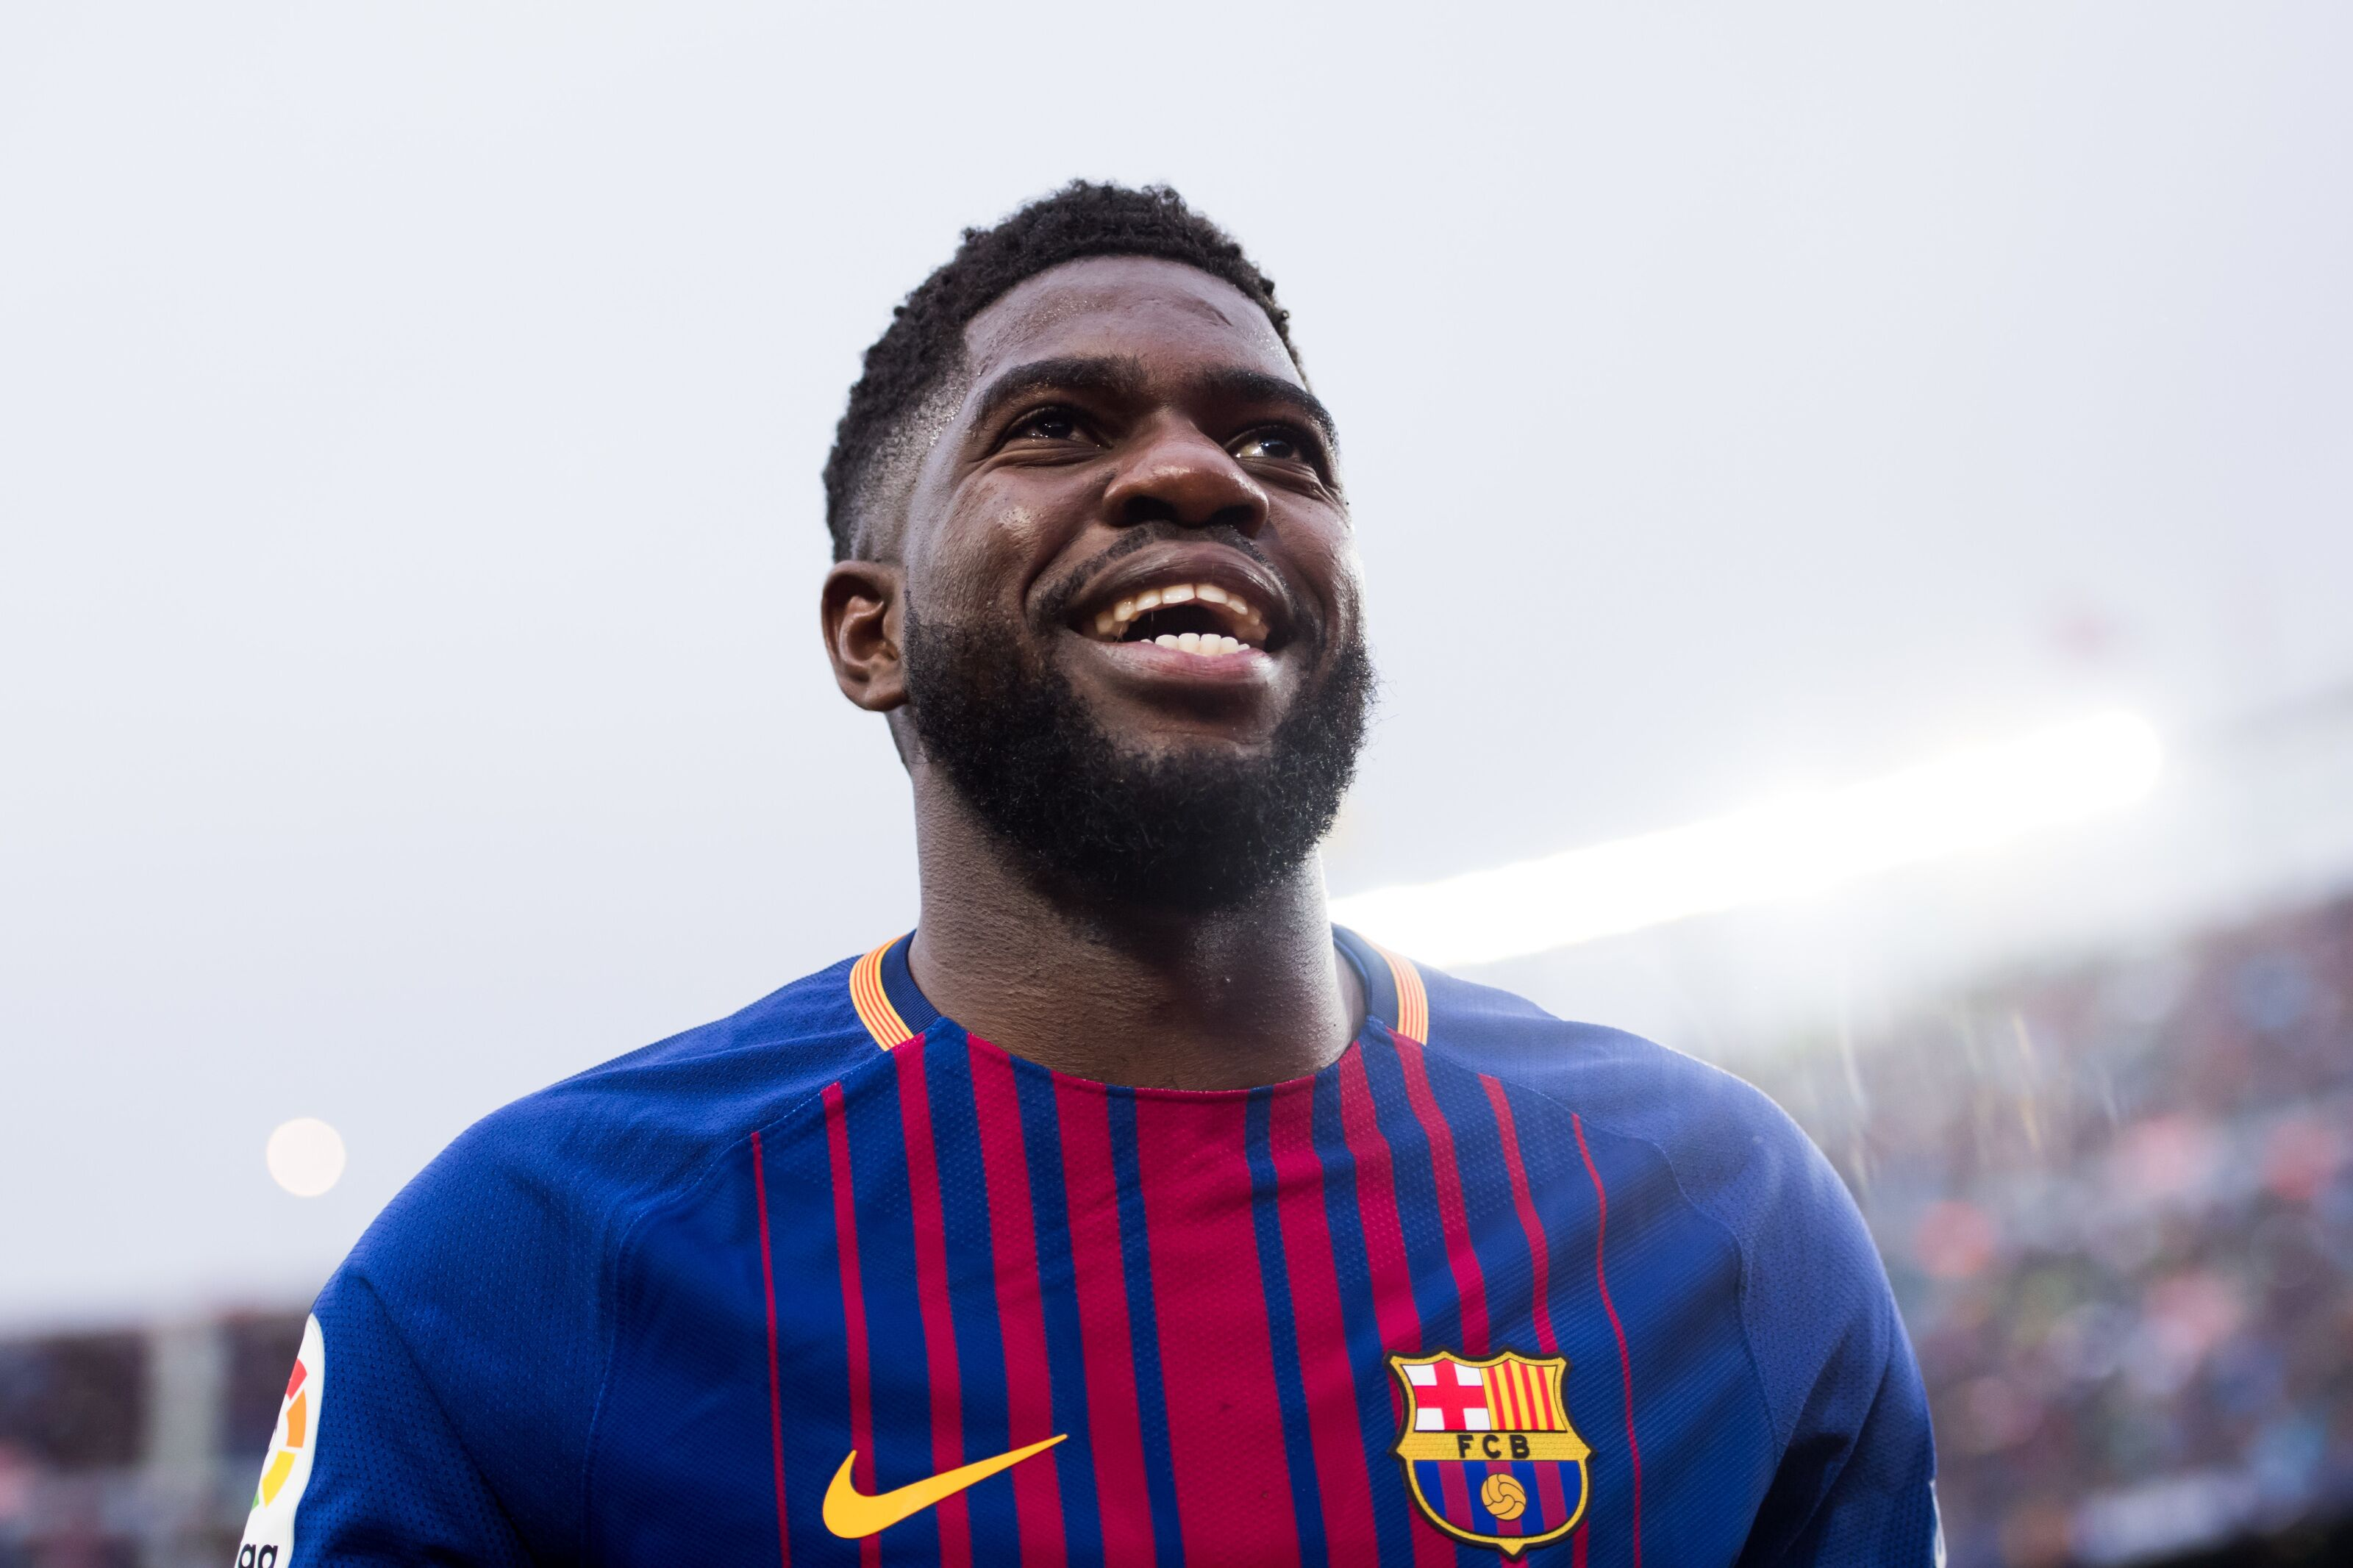 Manchester United to sign Samuel Umtiti from Barcelona in the summer?